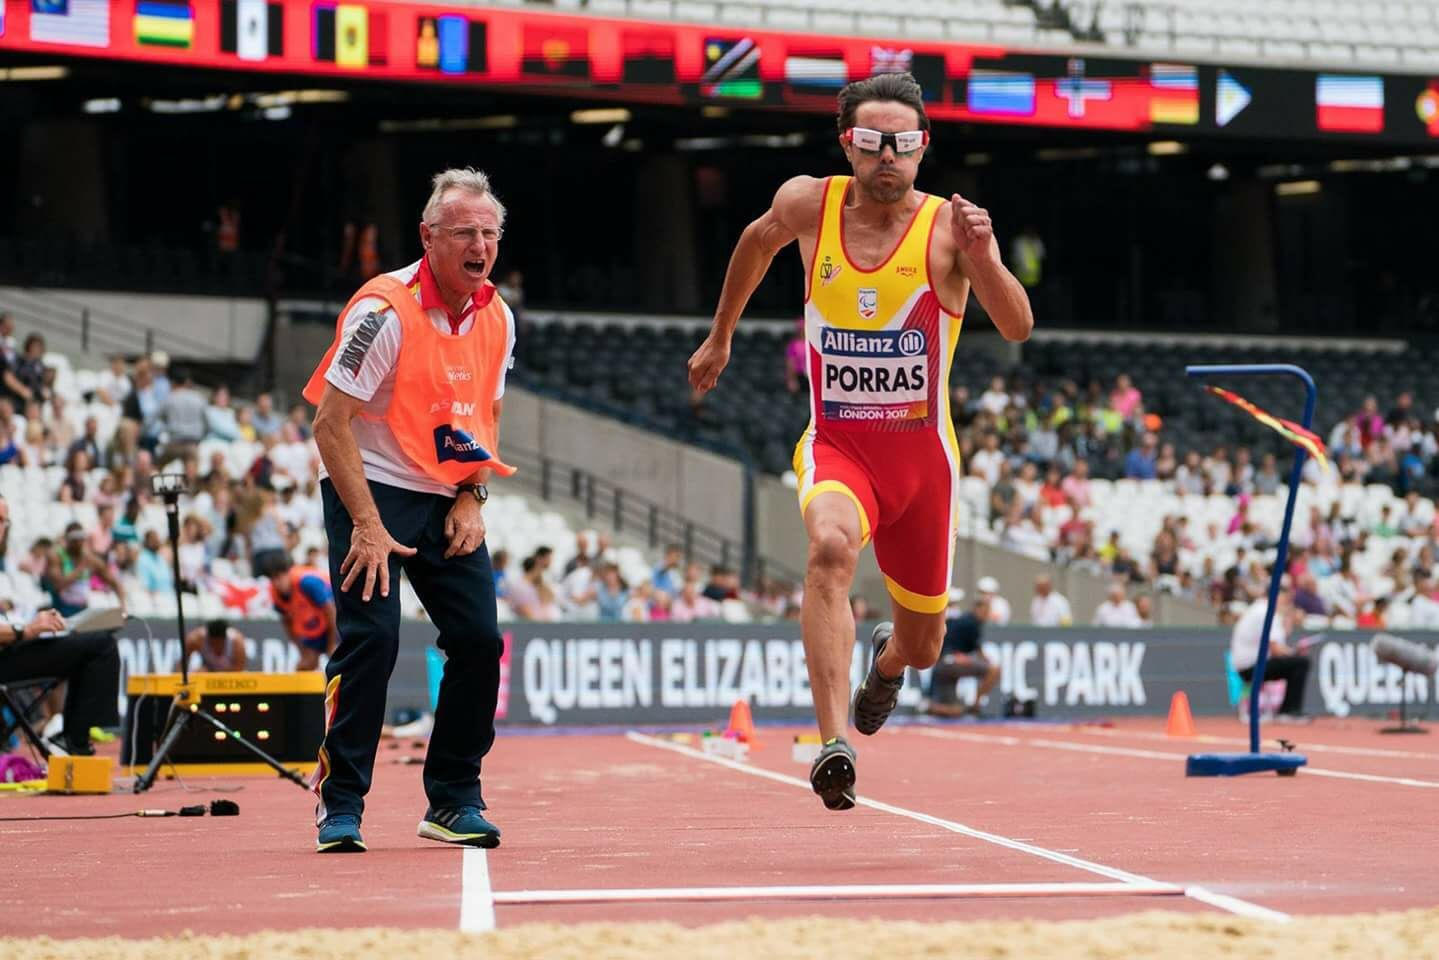 Image of Xavi Porras in the long jump with Miguel Angel Torralba in London 2017